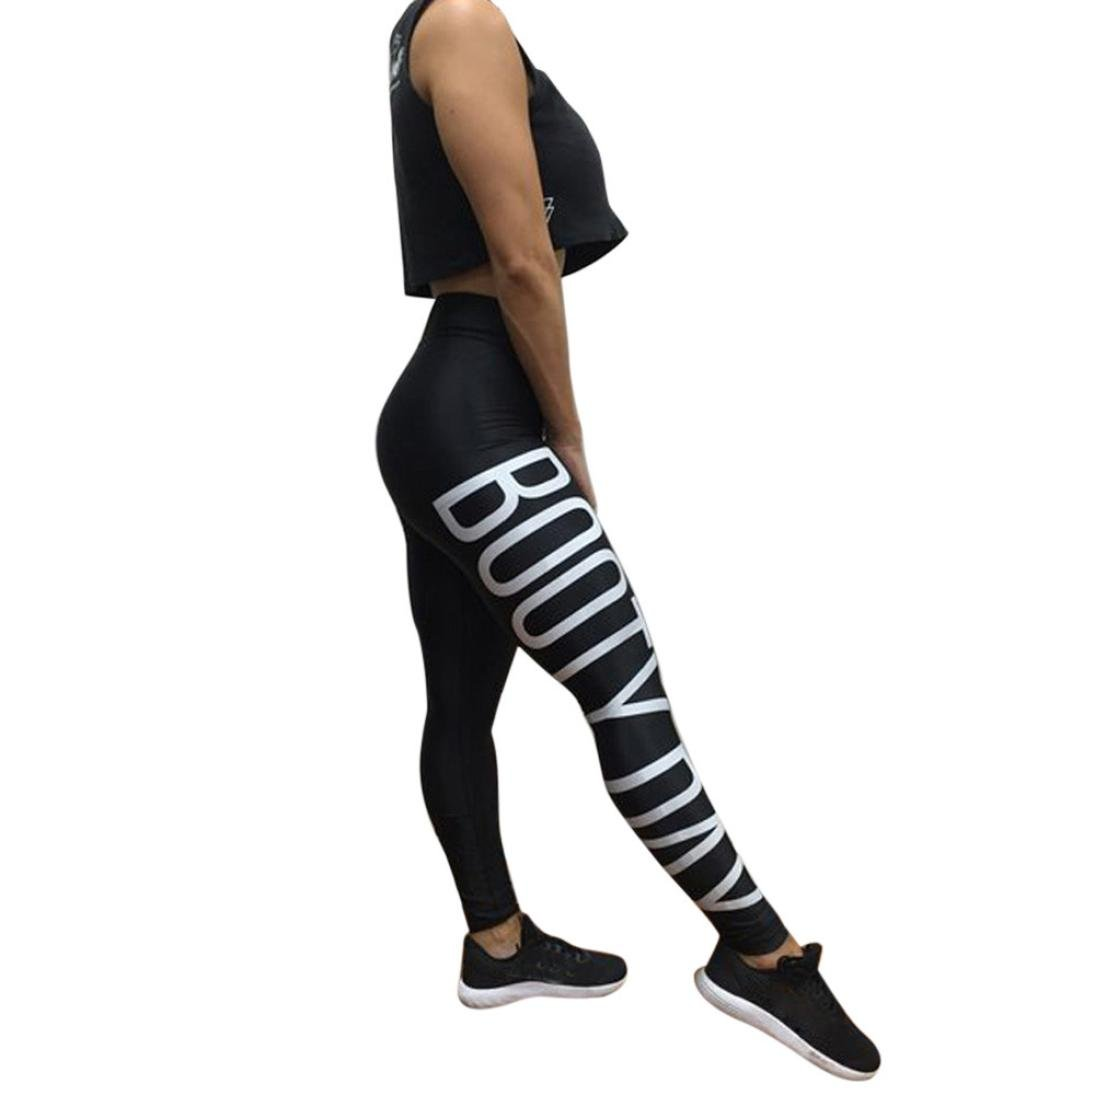 34a6c82b07 Waist Type:High ☆ Occasion:Casual,Sports ☆ Material:Polyester ☆ Style:Sport  Trousers,Yoga ☆ Sport: Yoga/Jogging ☆ Length:Ankle-length Pant